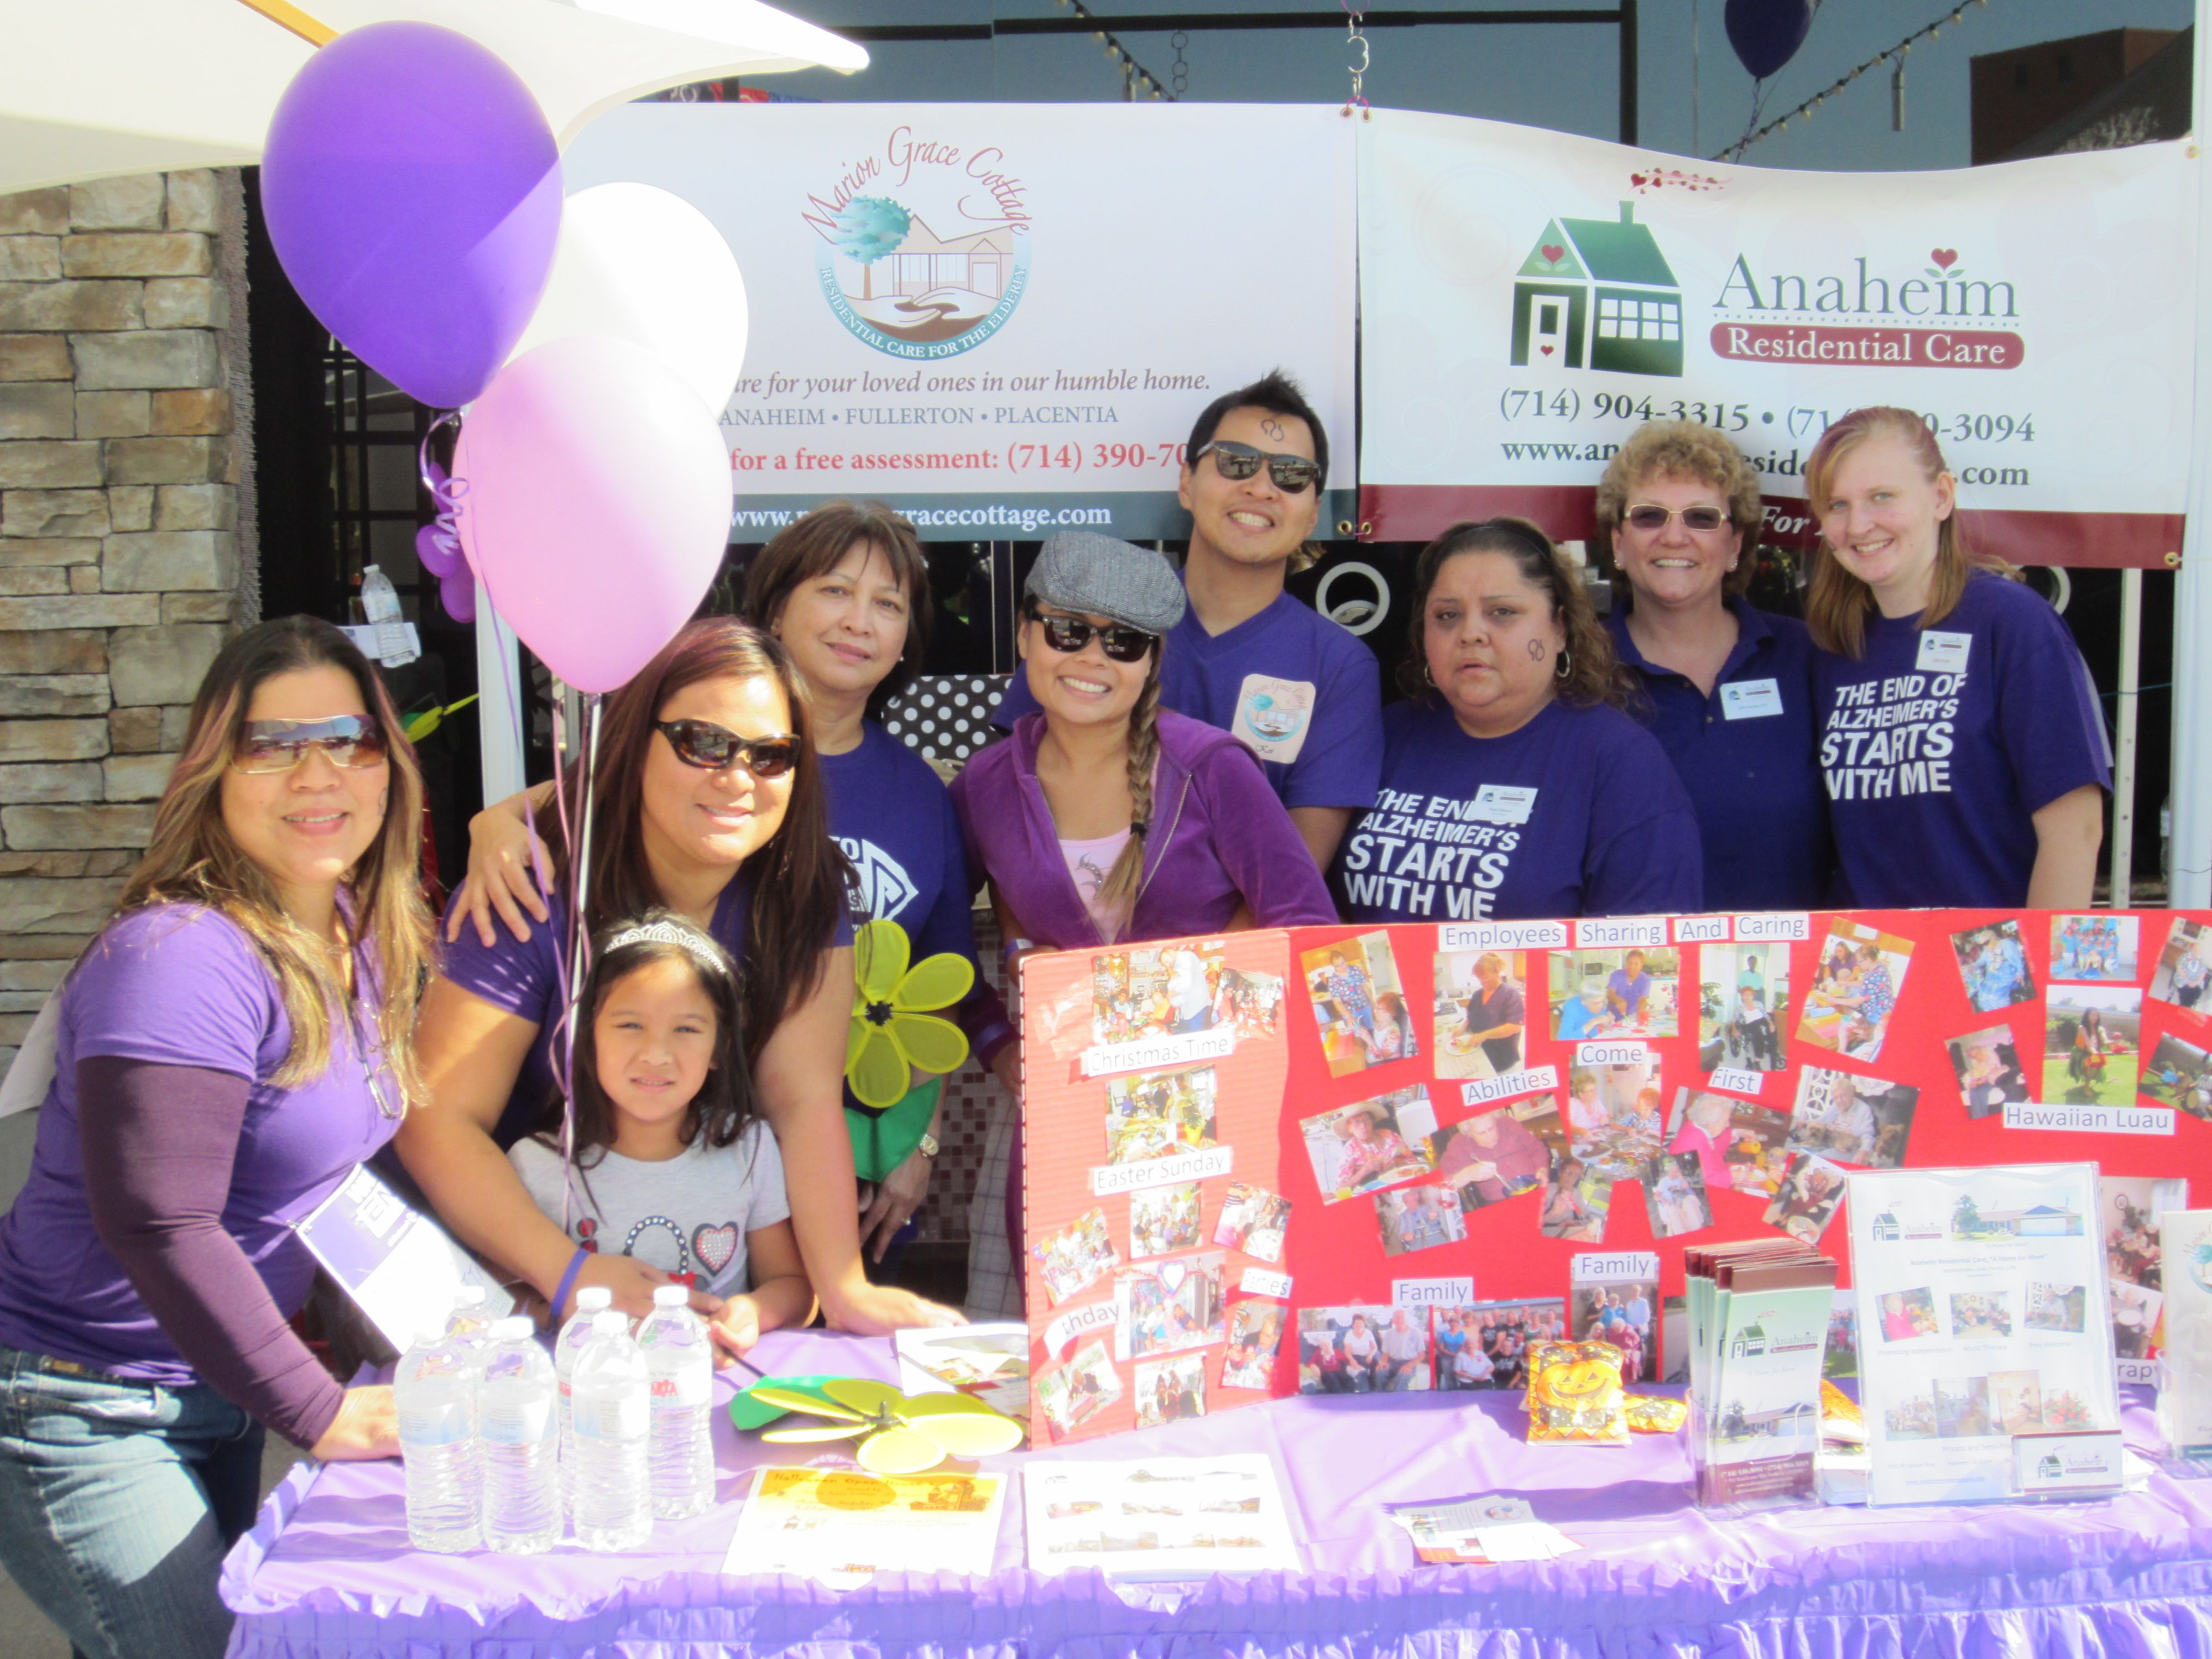 featuring marion grace cottage booth at the walk to end